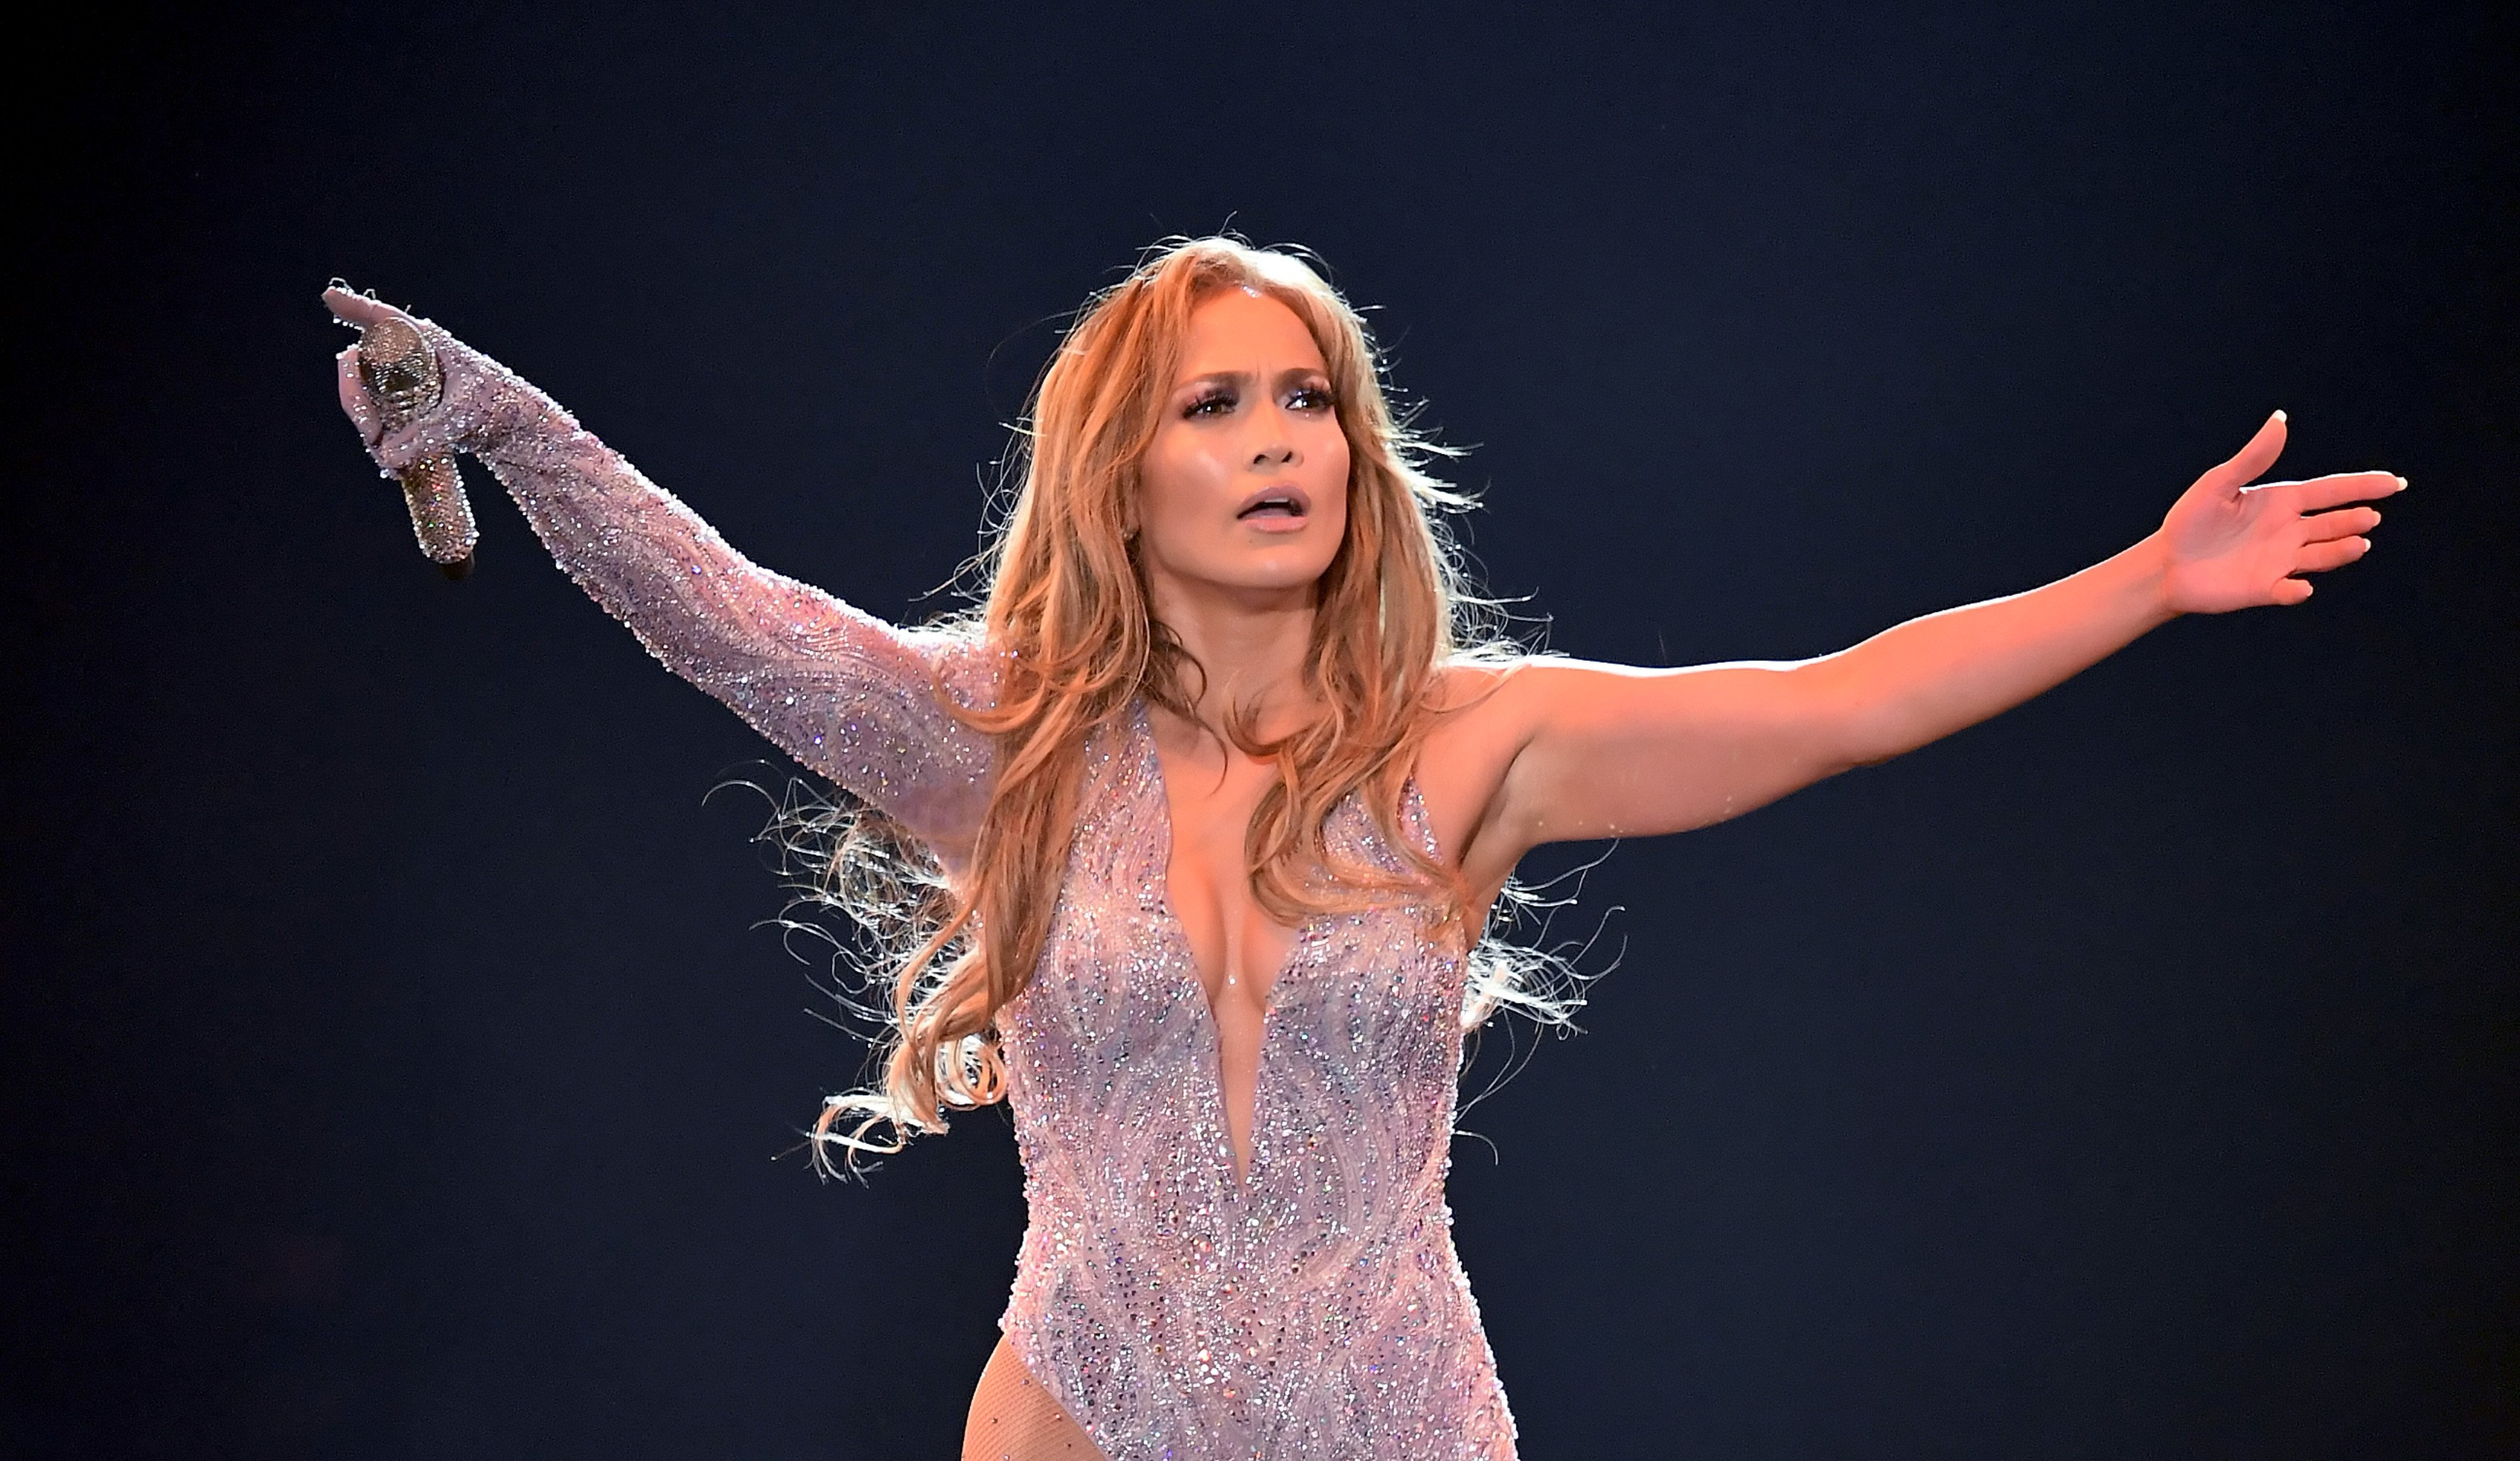 Jennifer Lopez performs onstage during the It's My Party Tour at The Forum on June 07, 2019.   Source: Getty Images